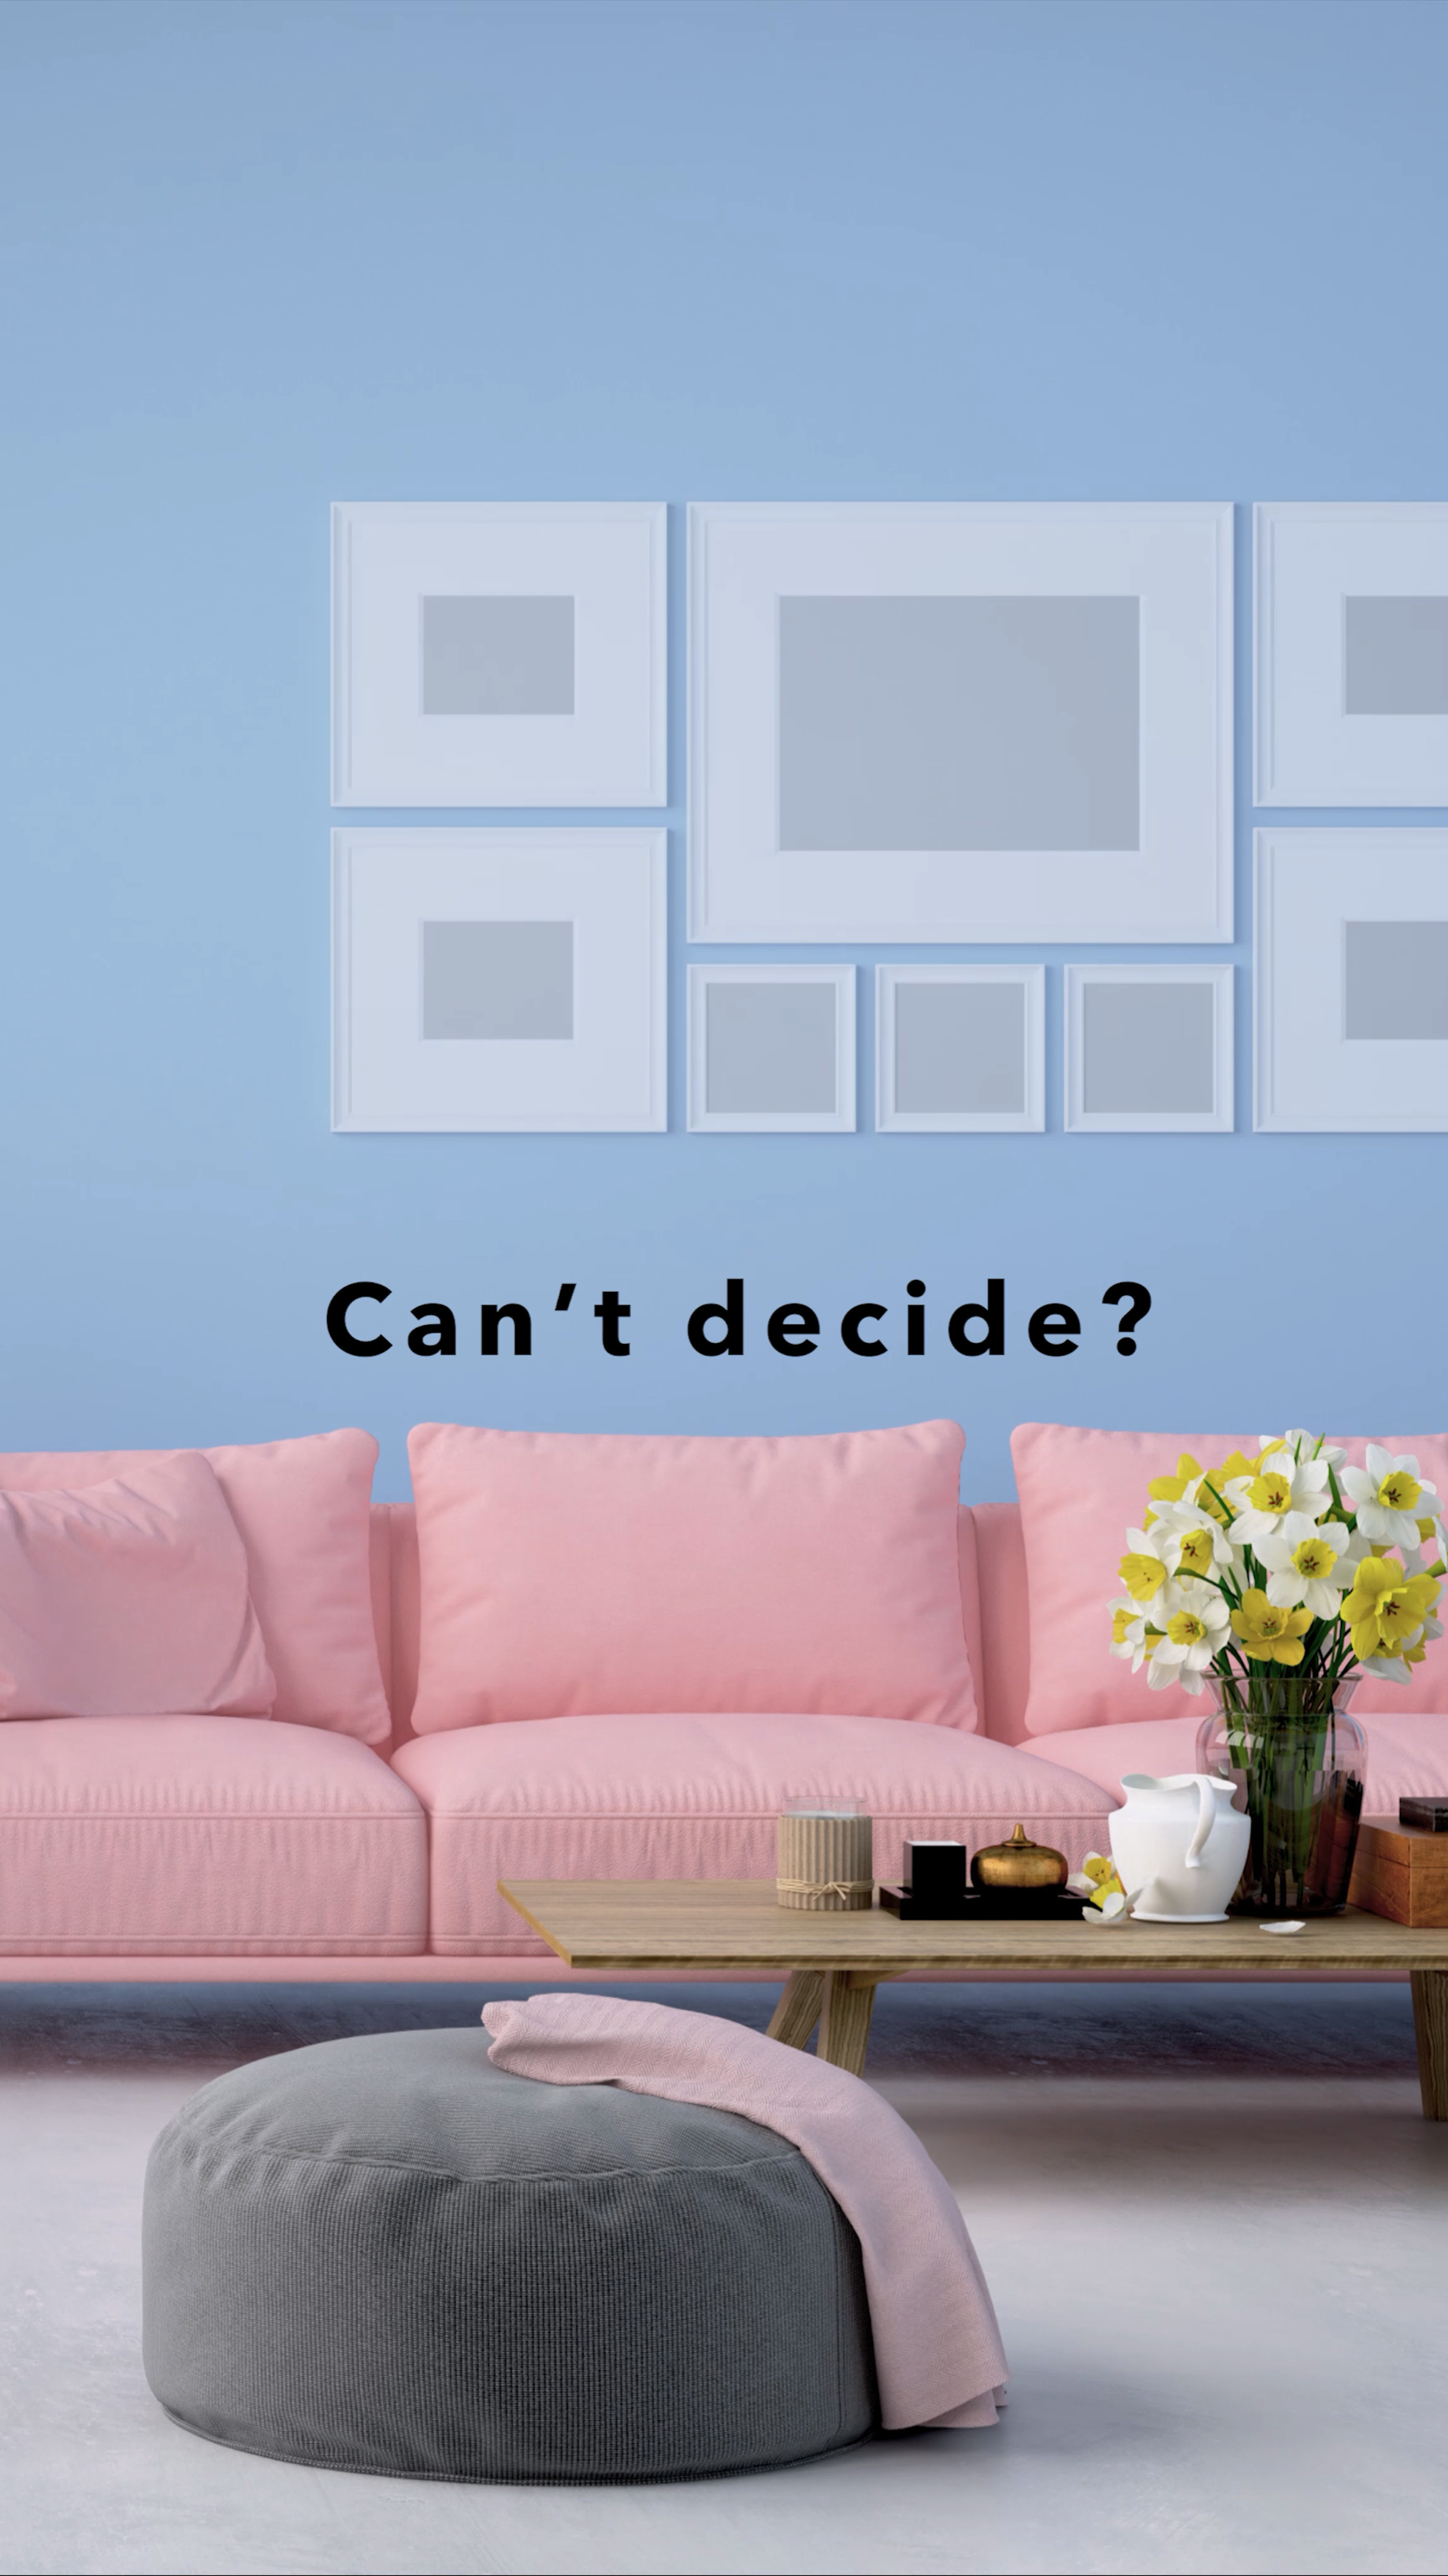 Cant decide your home decor item try before buying use decormatters ar interior design free app to diy and view furniture in your room before purchasing